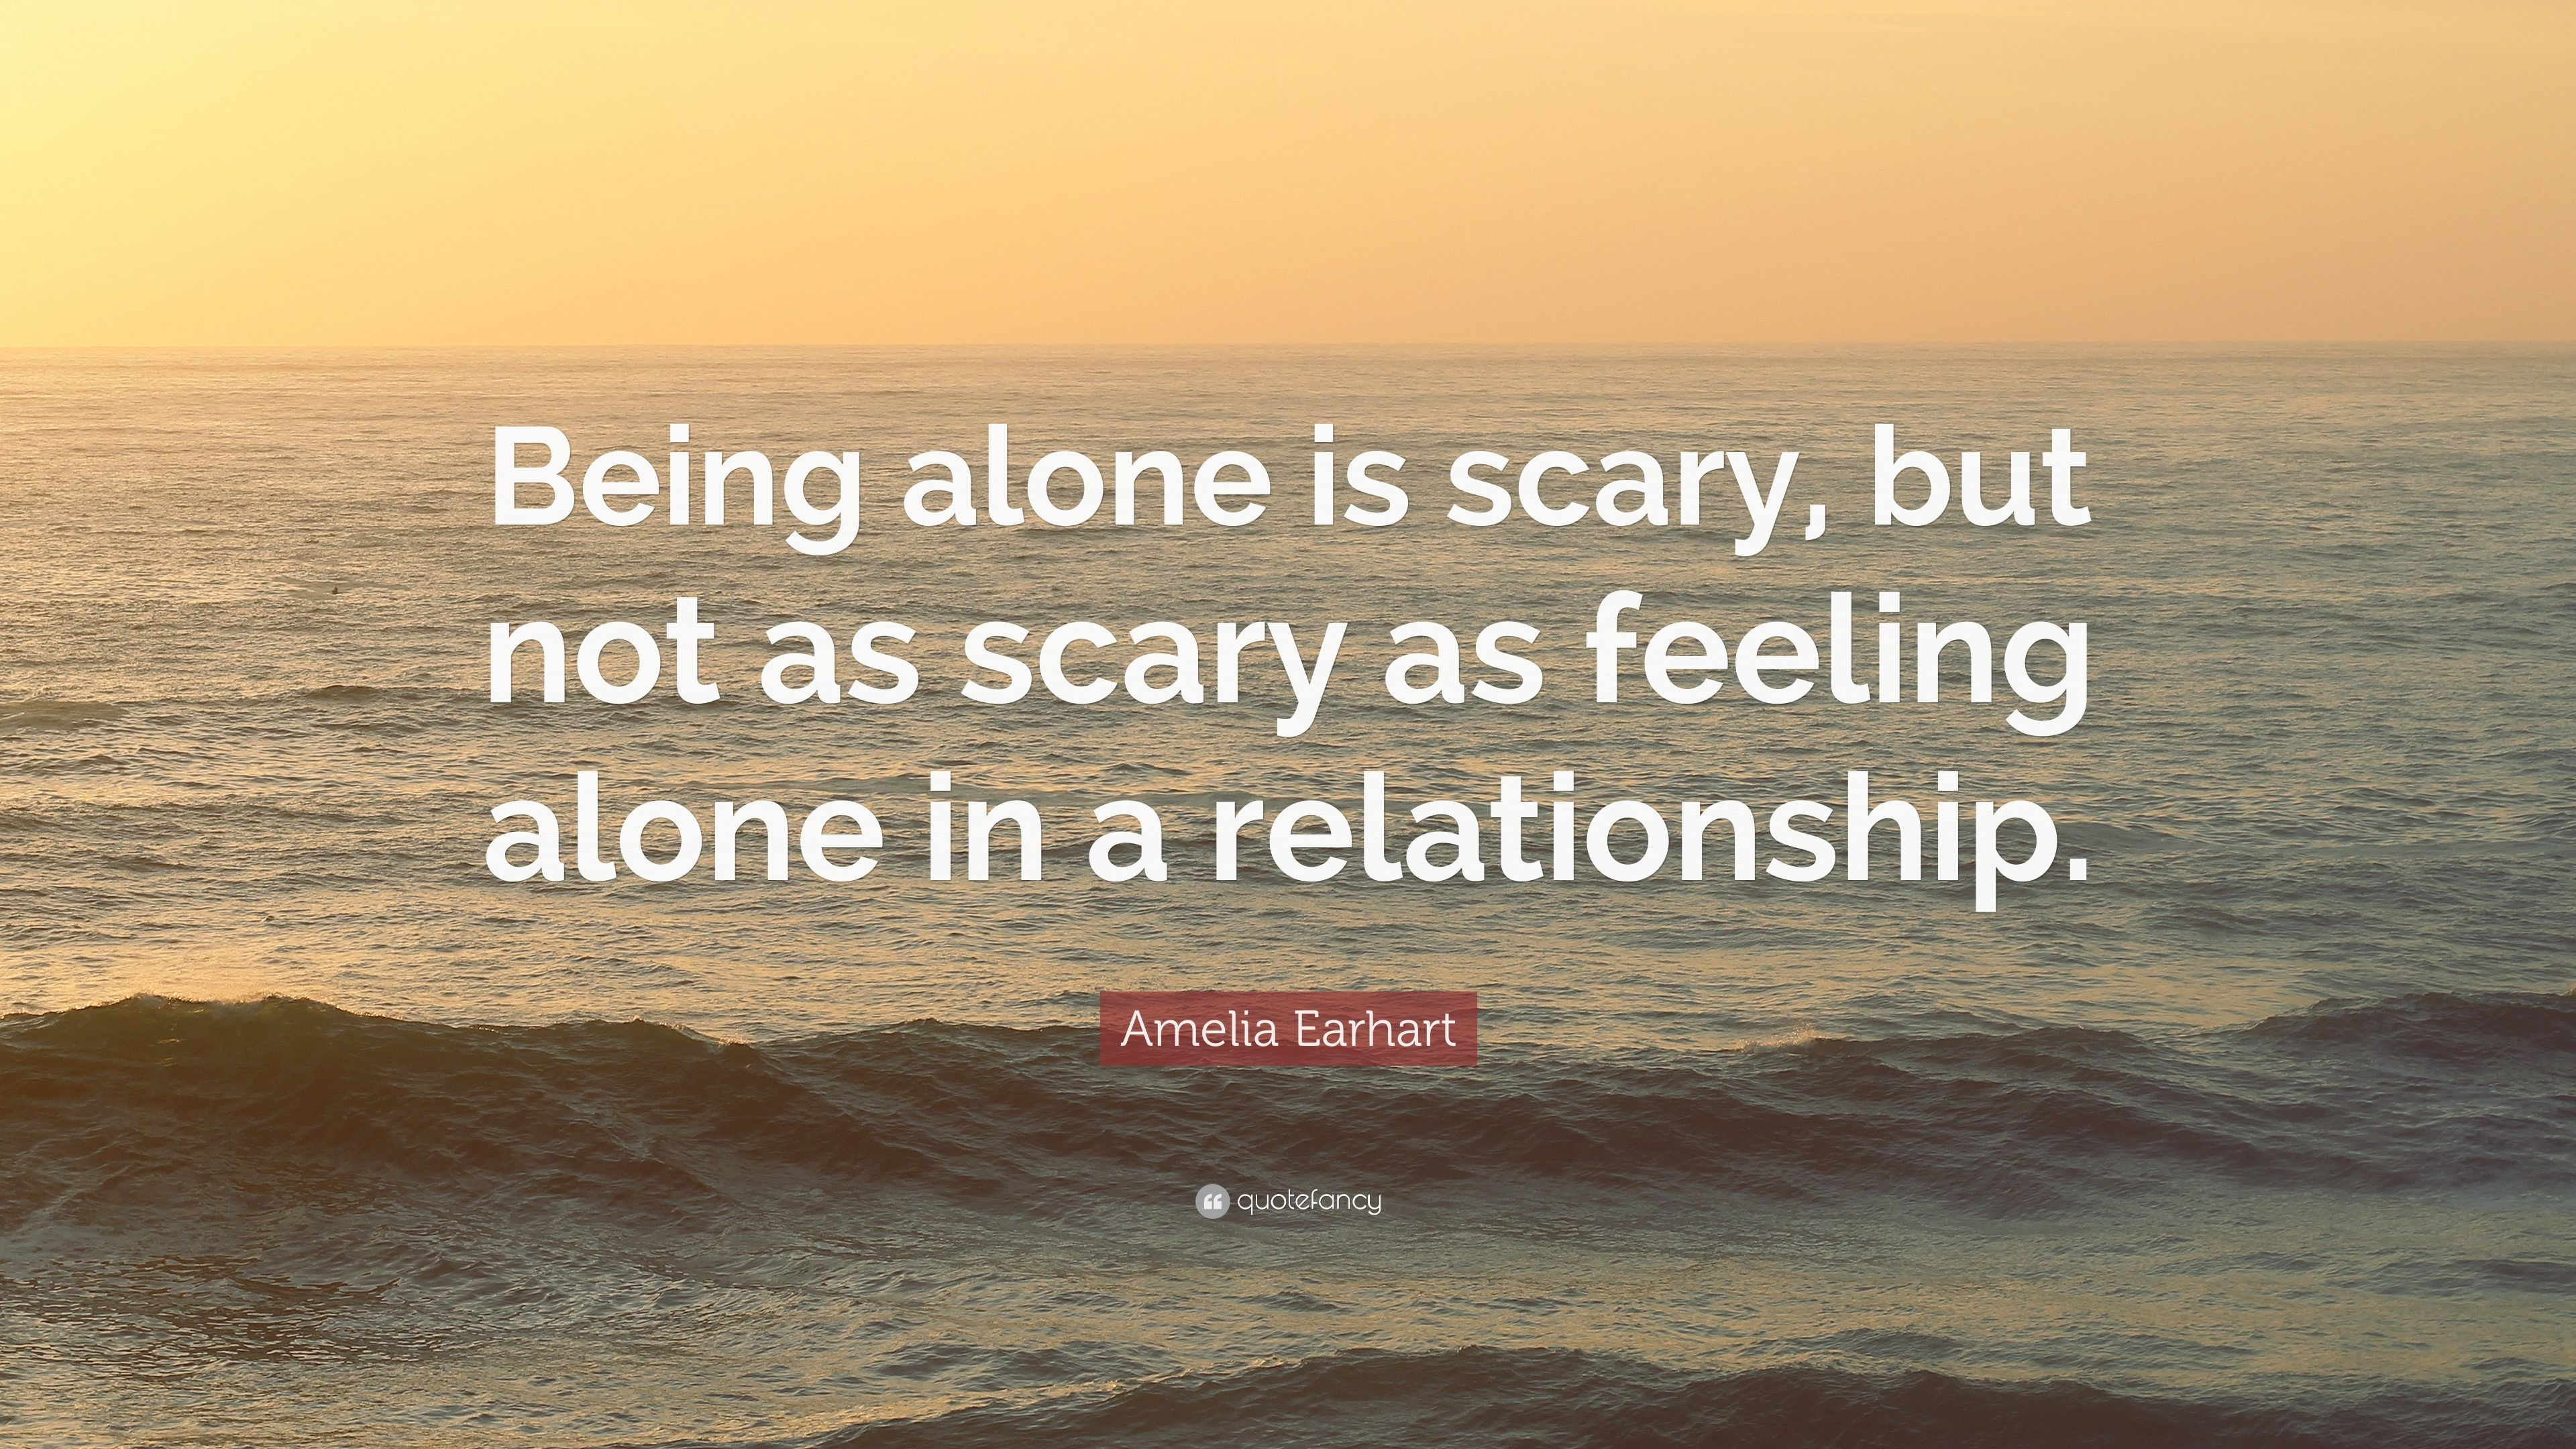 Feeling Alone In A Relationship Quotes Amelia Earhart Quote: ...